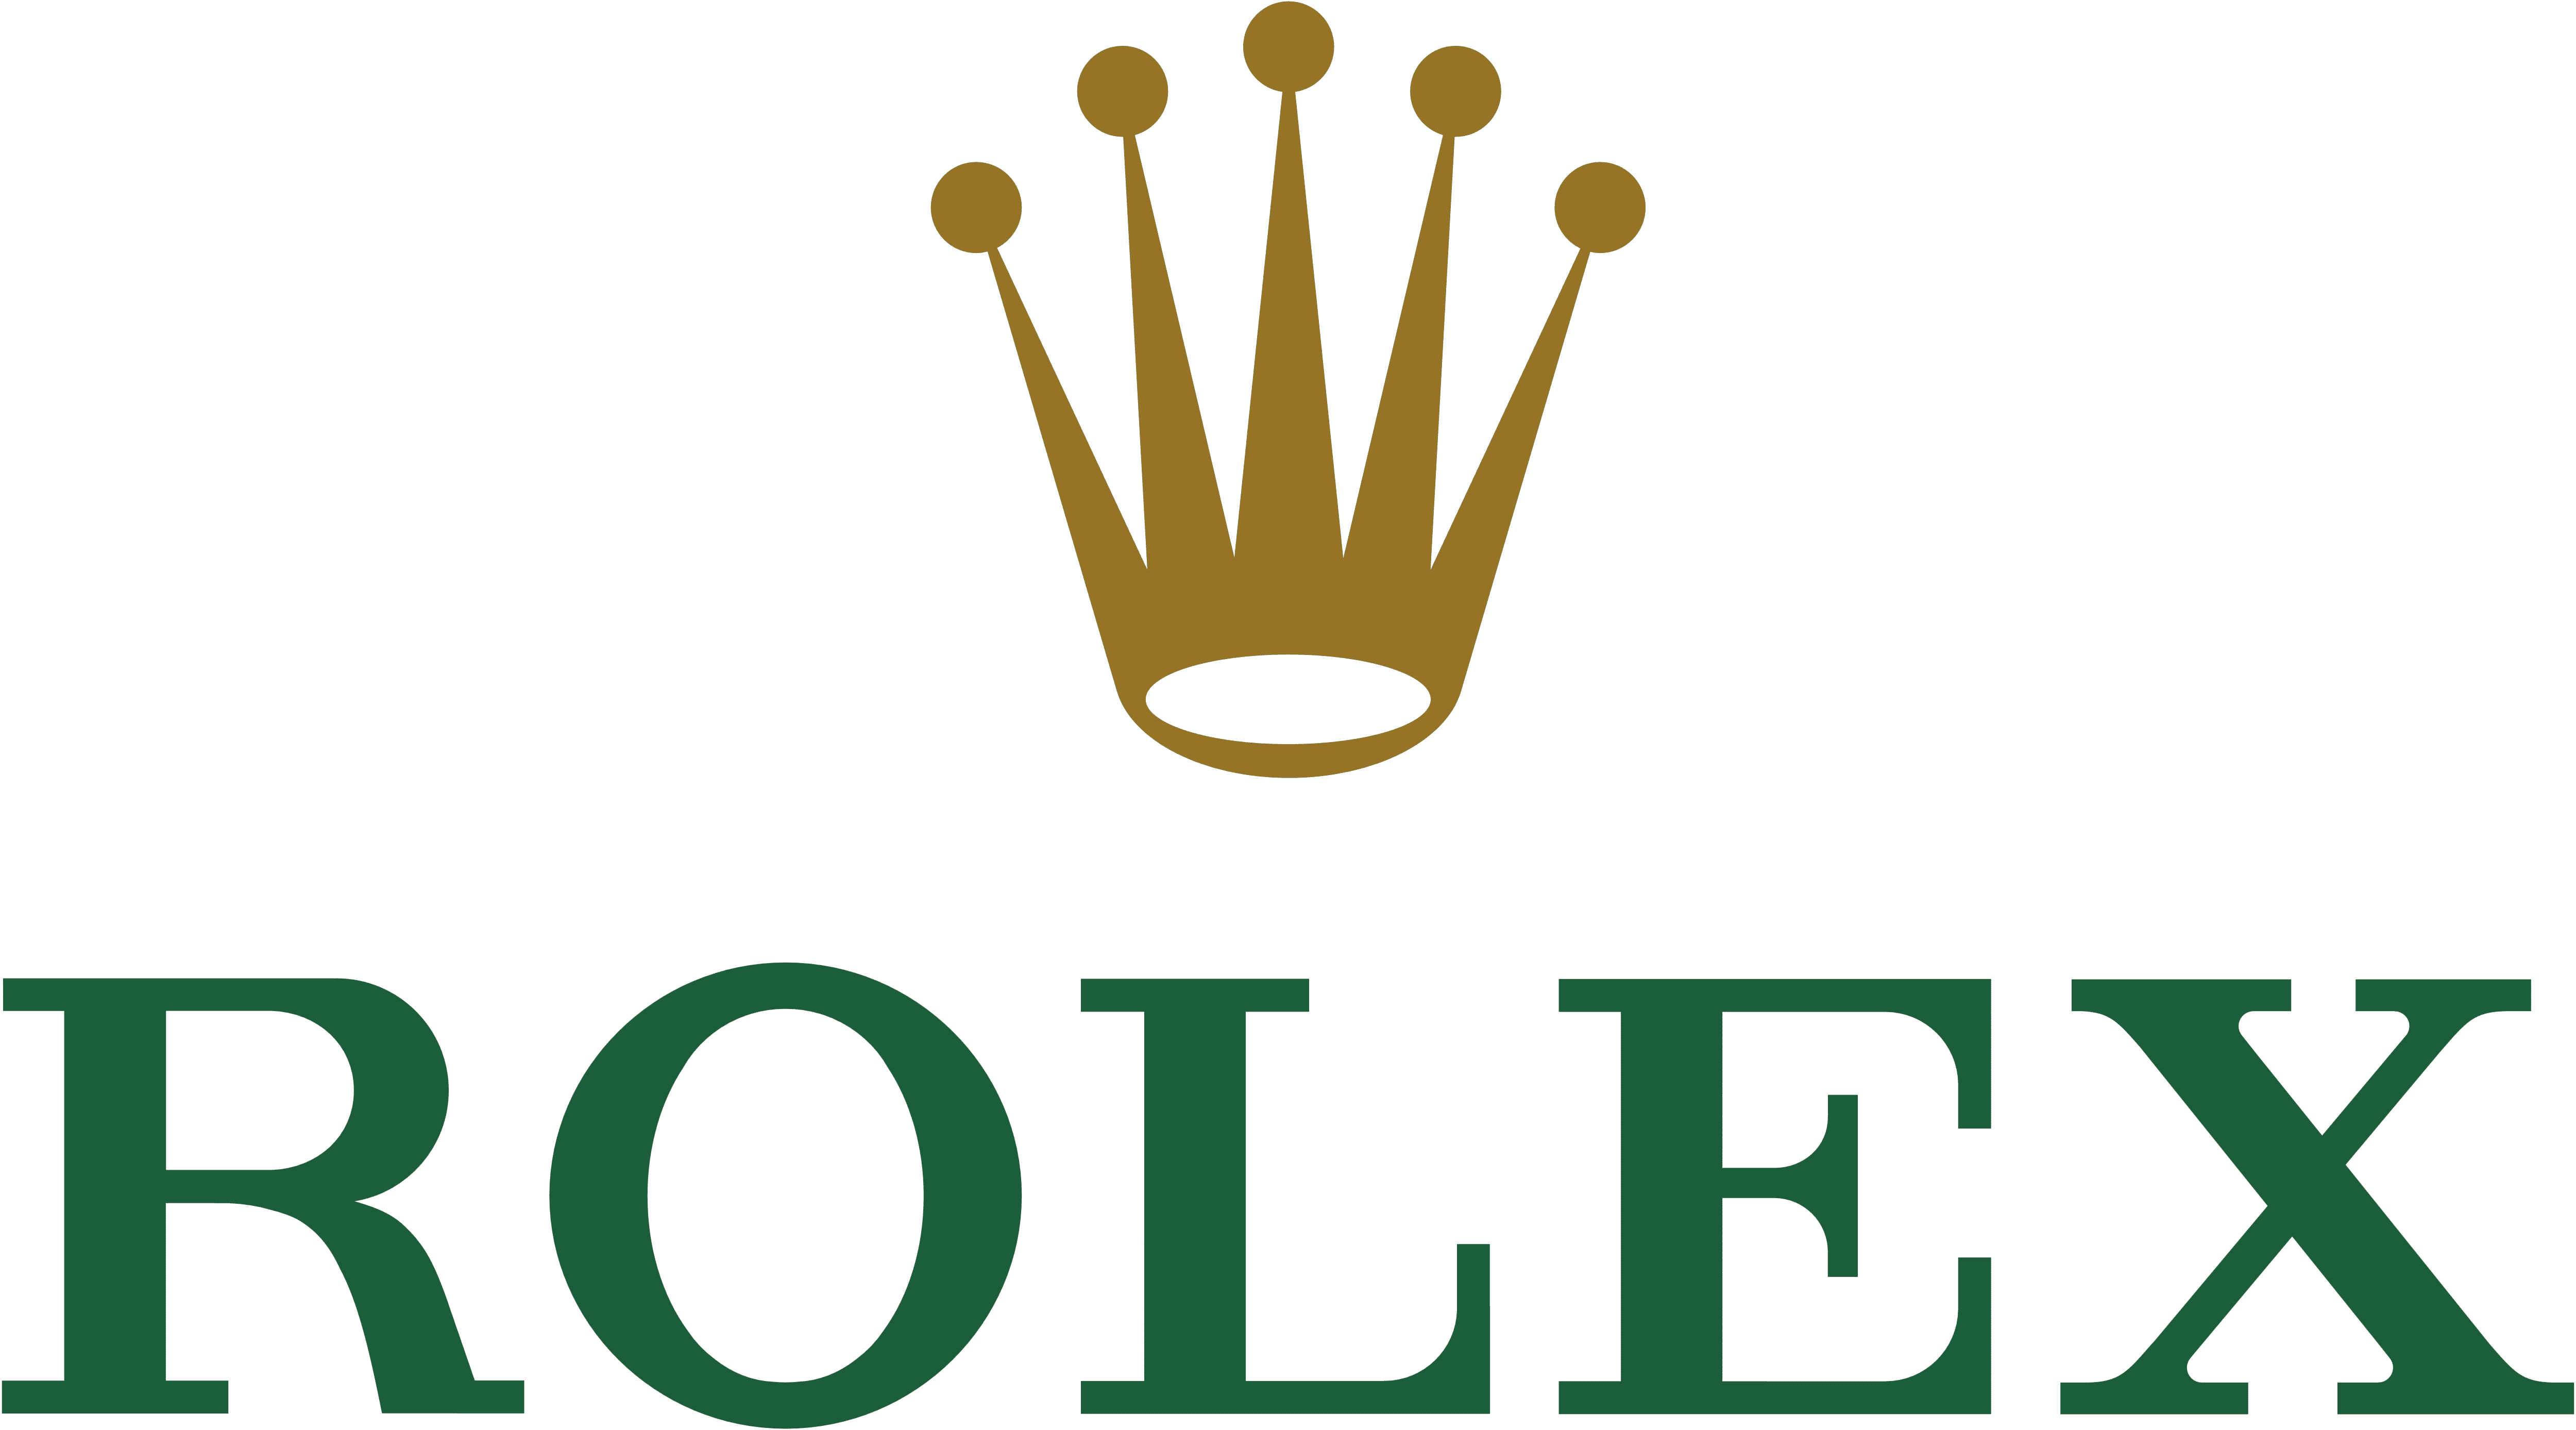 rolex logo rolex symbol meaning history and evolution